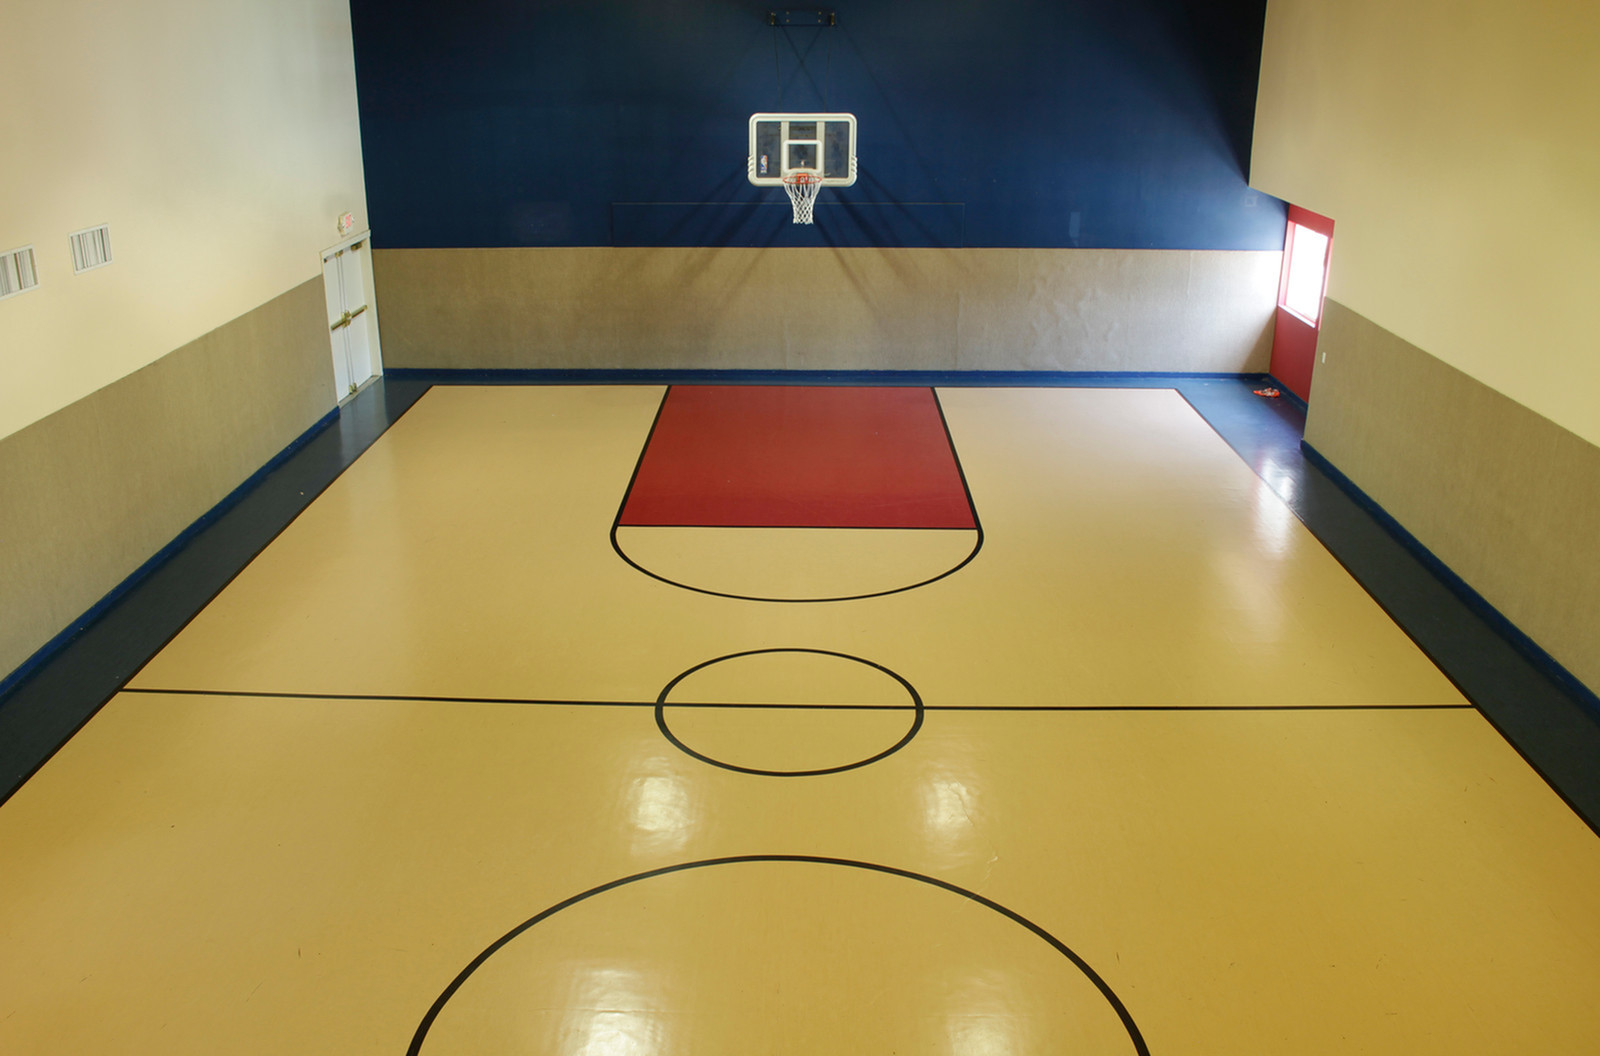 Community Basketball Court | Apartments Homes for rent in Tacome, WA | Nantucket Gate